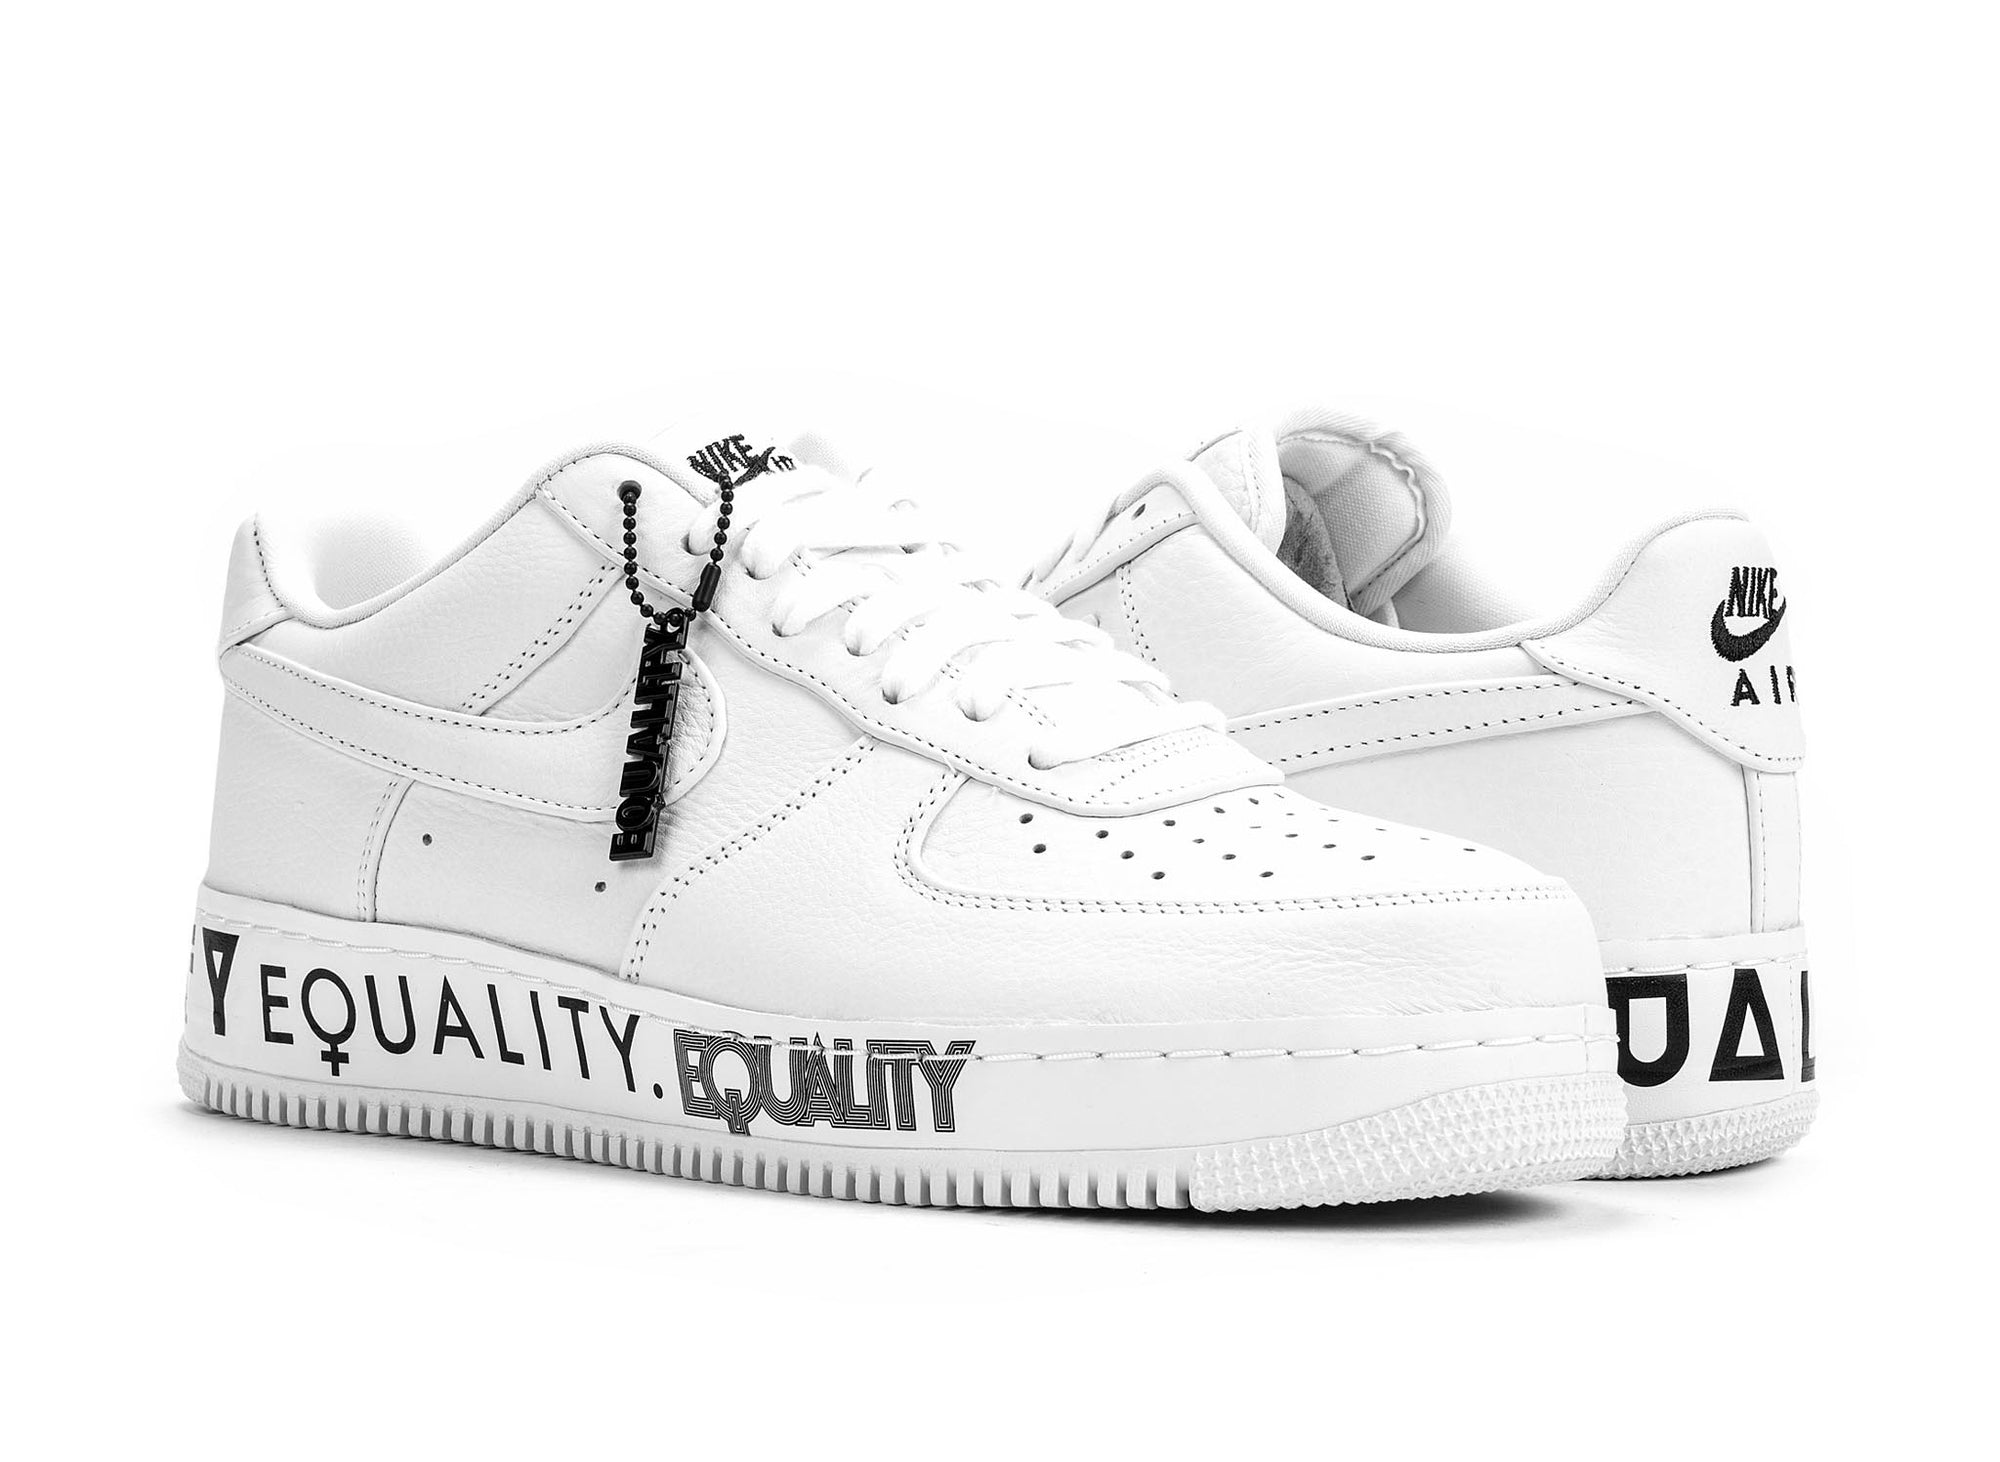 f2f4e676a828d Nike Air Force 1 Low CMFT 'Equality' - Oneness Boutique